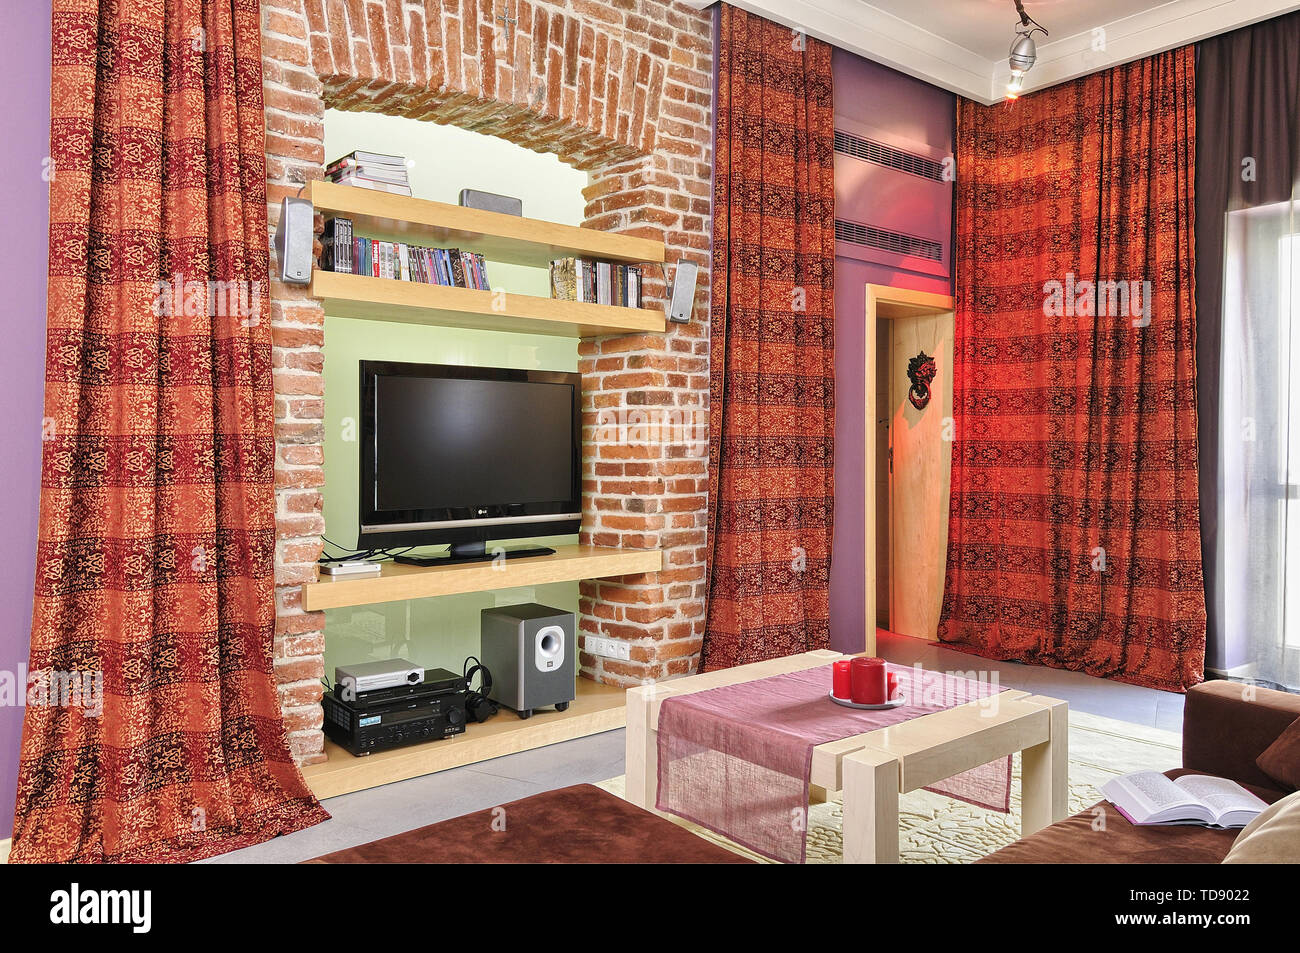 TV and audio video equipment on recessed brick wall shelves in modern living room    UK AND IRISH RIGHTS ONLY - Stock Image